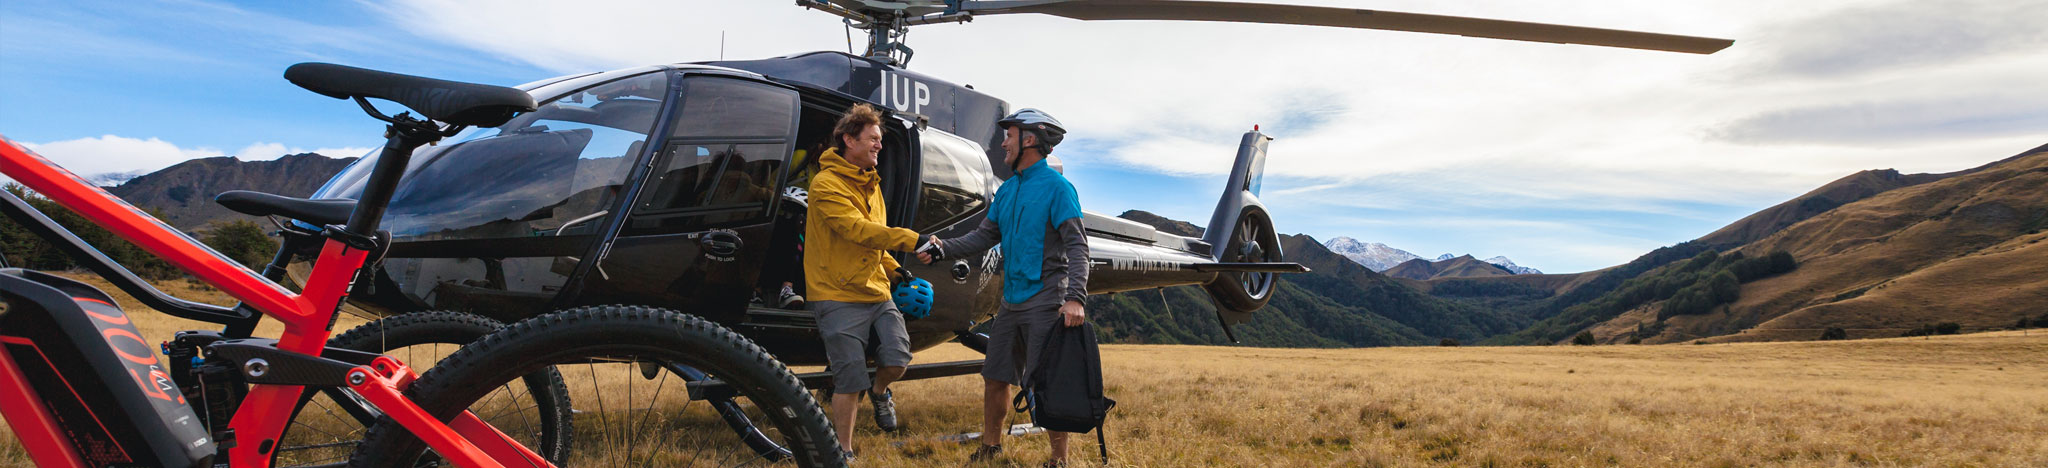 Heli Biking Vacations - Latitude South Luxury Travel